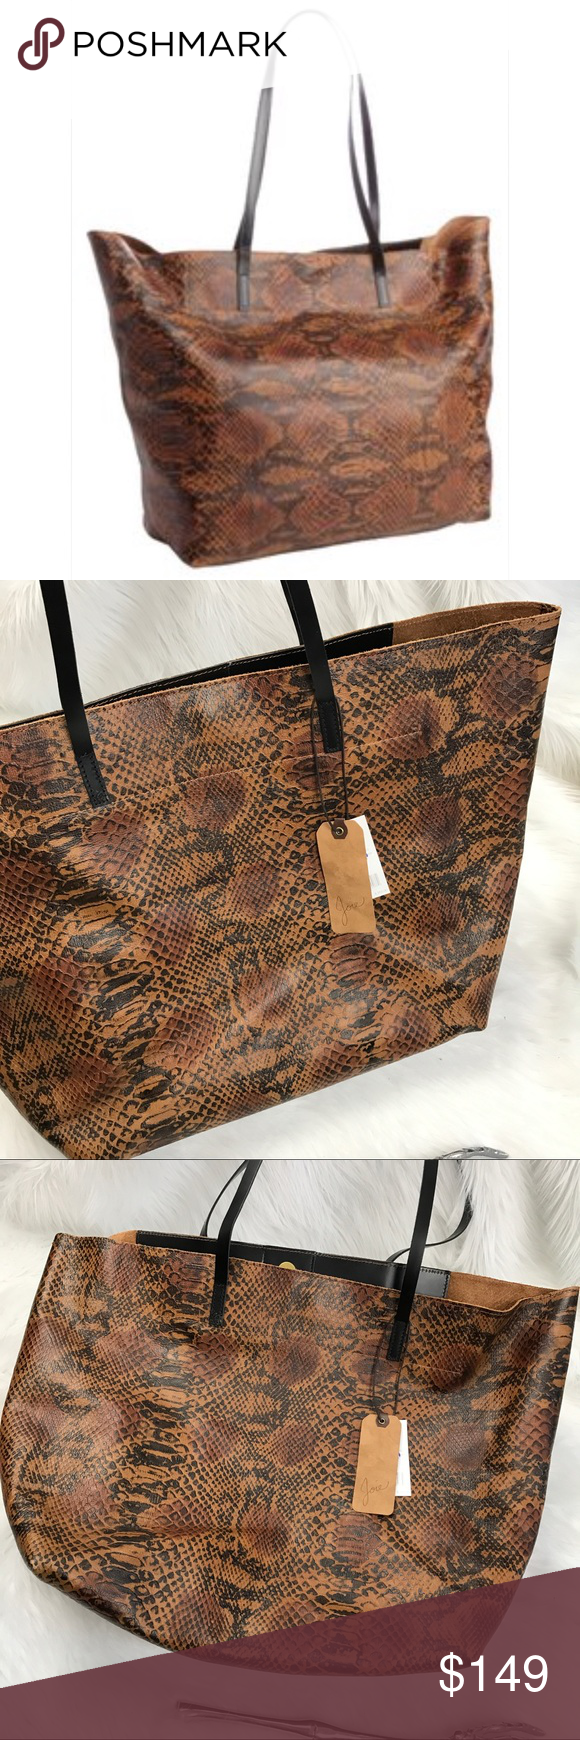 "Joie brown crocodile Sunday tote bag New With Tags .  Joie Antiqued Crocodile Embossed Leather And Goldtone Hardware Magnetic Snap Closure 24"" Shoulder Strap With 10½"" Drop Self Lined With Zip Leather Flap, Zip Pocket Measures Approximately 20½'' At Widest X 13'' Tall At Center X 7'' Deep Leather snake skin python croc animal print pattern   💙 please use the offer button  🛍 BUNDLE FOR 10% OFF •   🚭smoke free  🌟 5 star rating   www.thethugwife.com 💀 @thethugwifeboutique             🚫…"